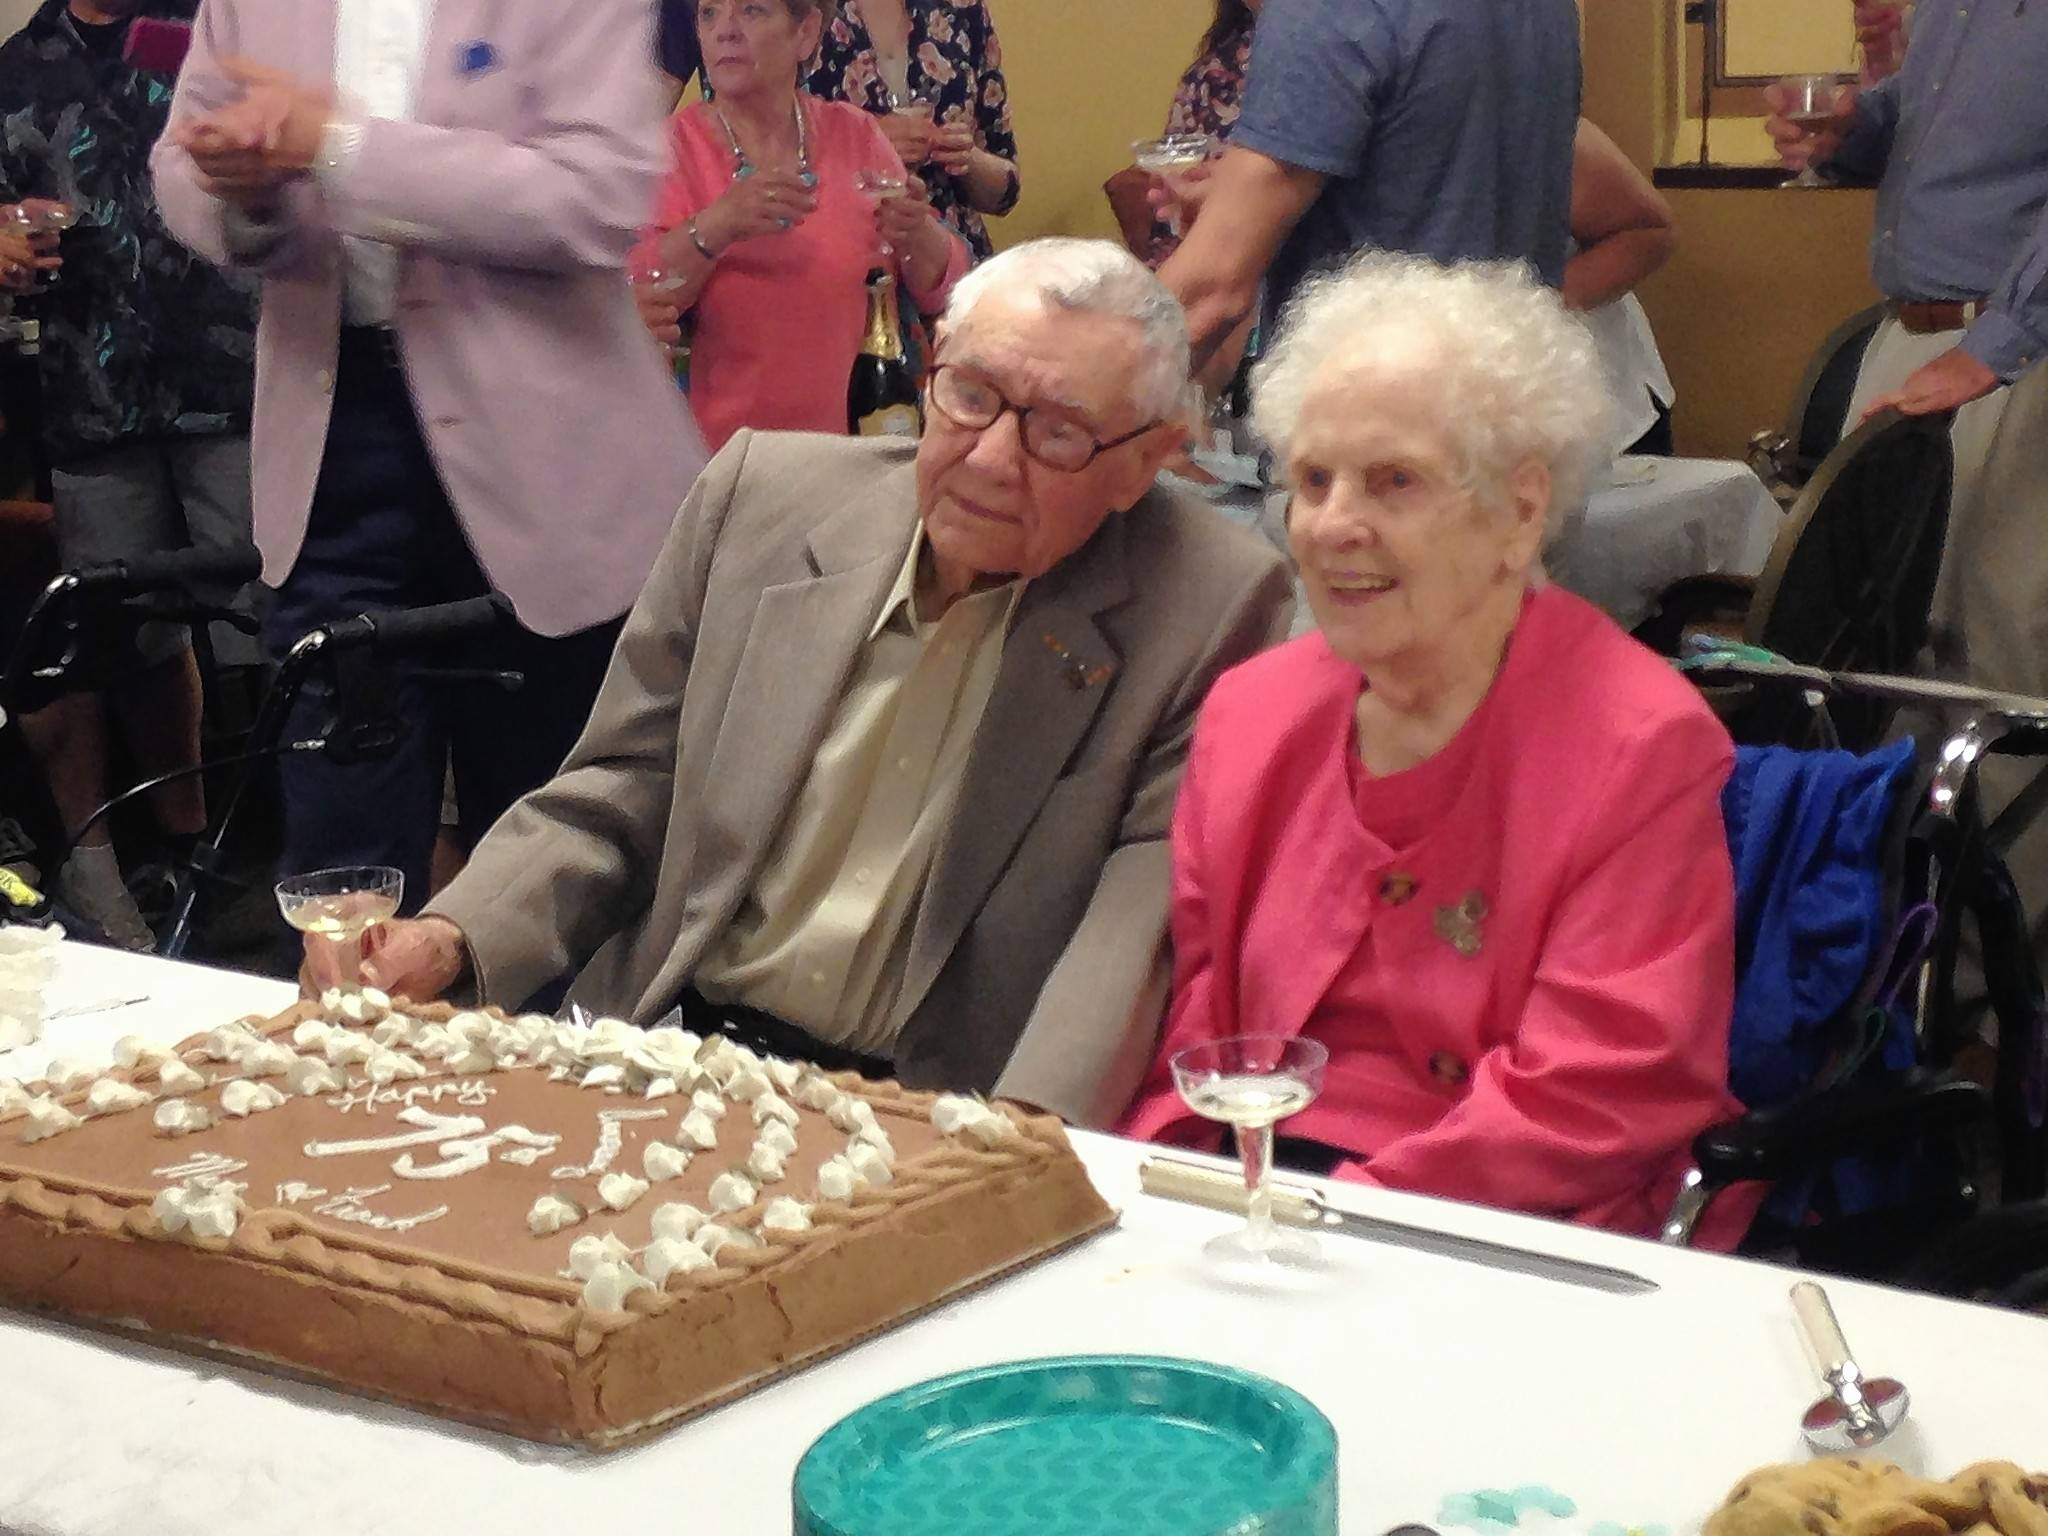 Frank and Mary Andrews, of Des Plaines, celebrated their 75th wedding anniversary with family and friends this month.